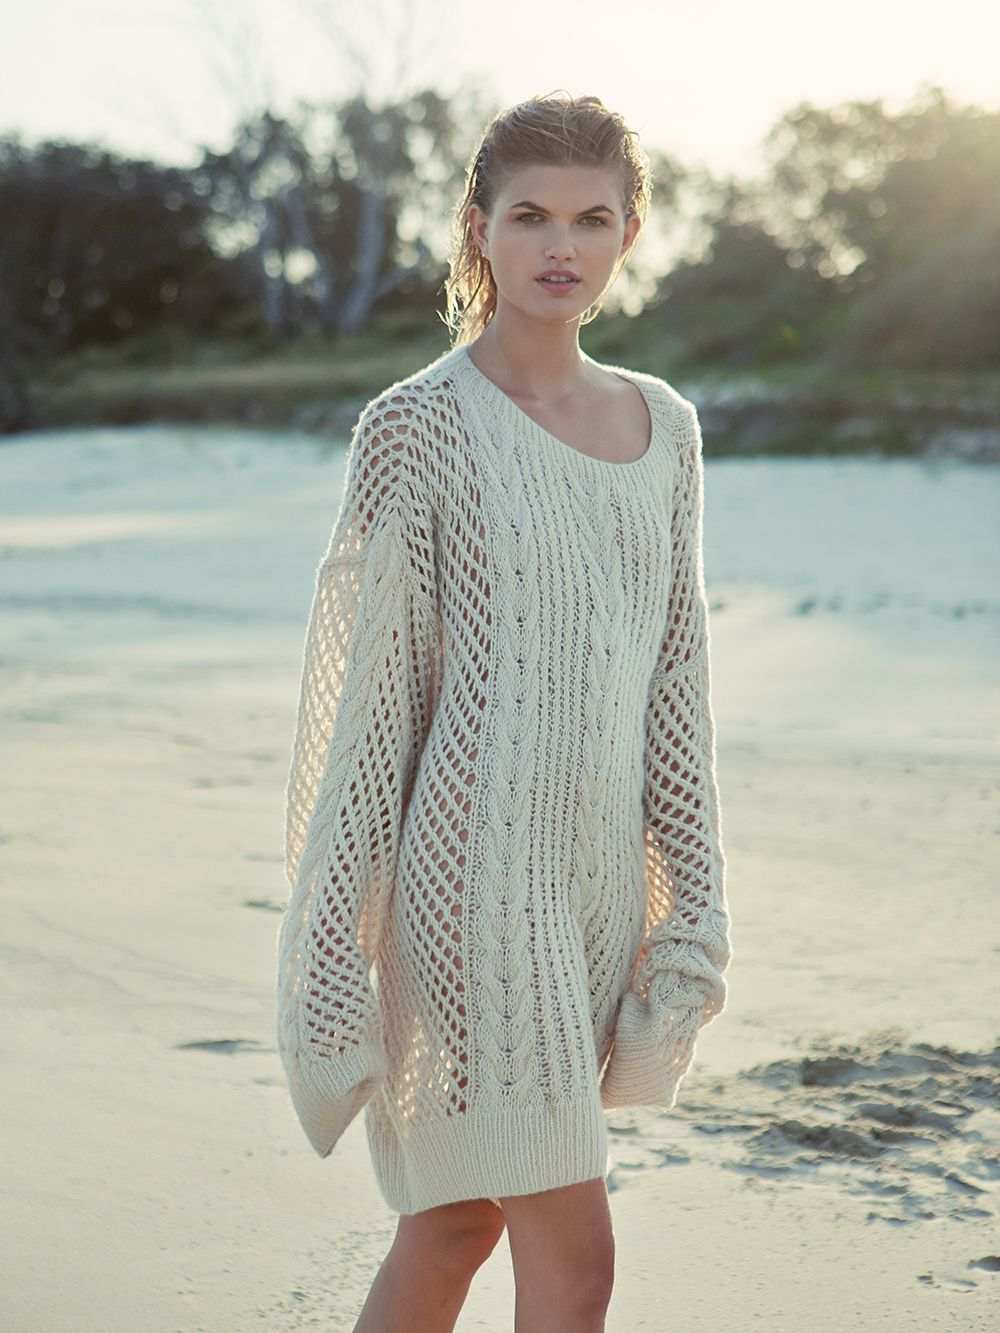 Sybil Steel, Photographer, Louise Mikkelson, Model, Oversized Knit ...